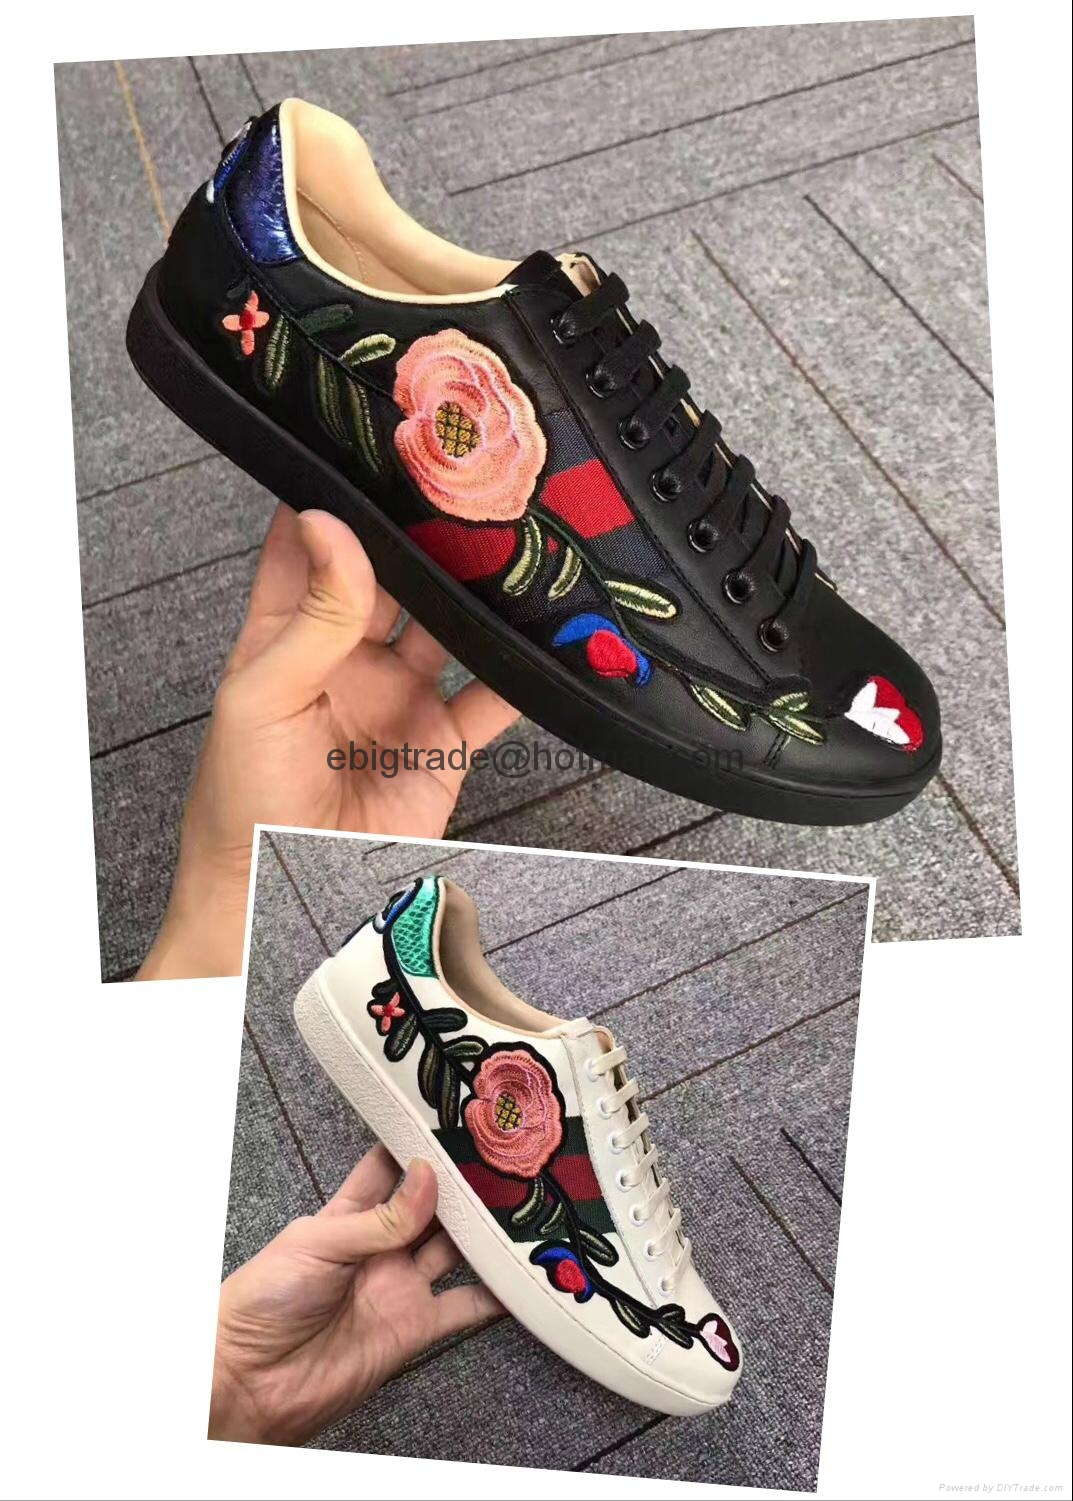 Cheap Gucci shoes for men Gucci sneakers for men replica Gucci shoes on sale  13